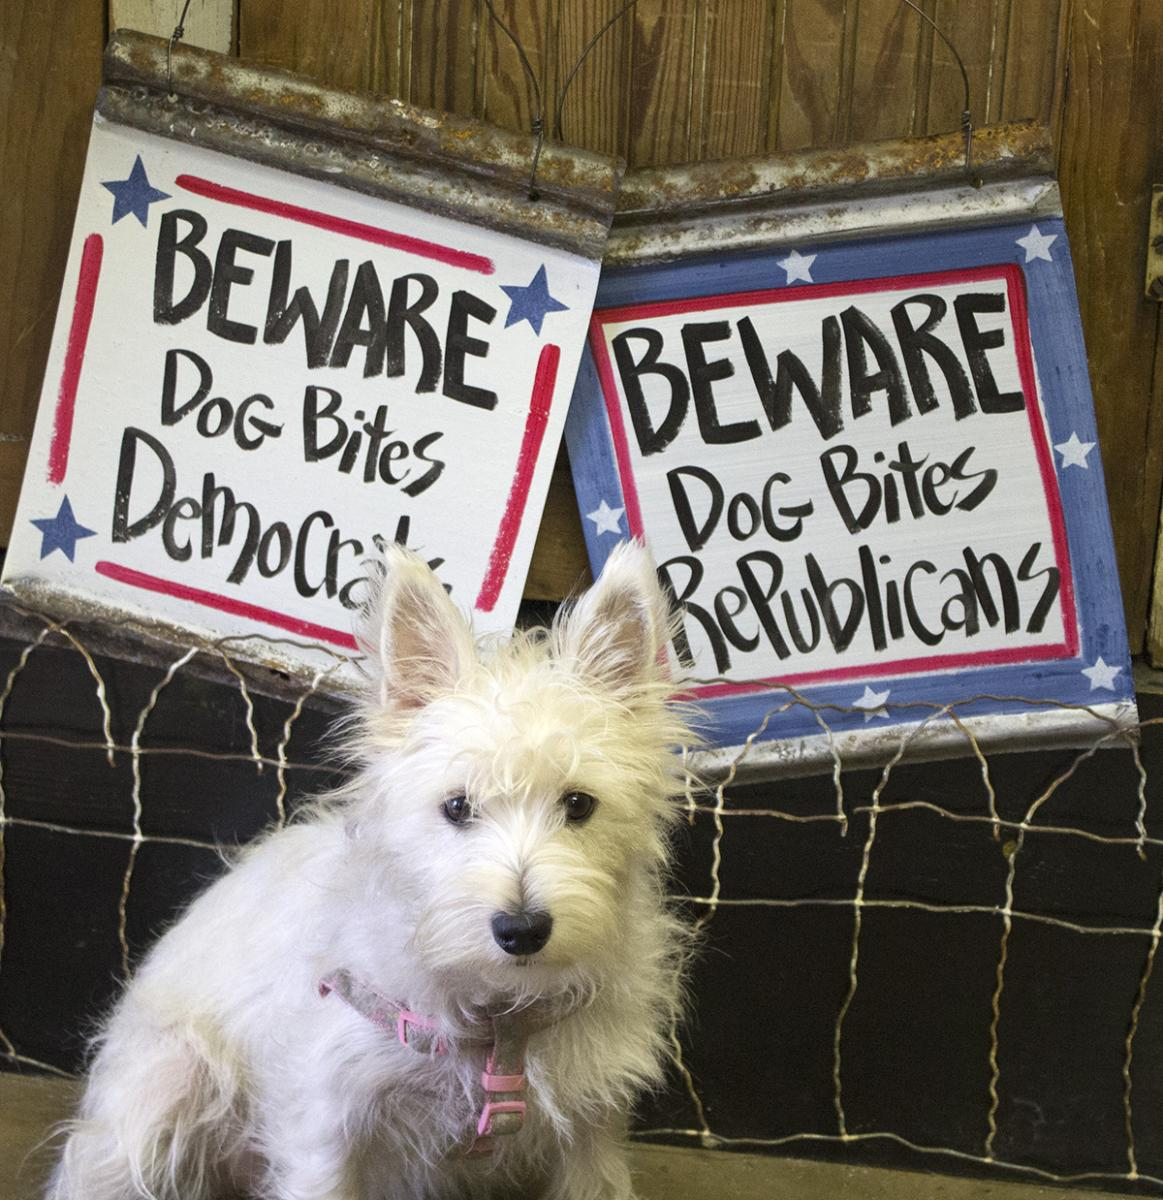 Beware - Dog bites Repulicans!